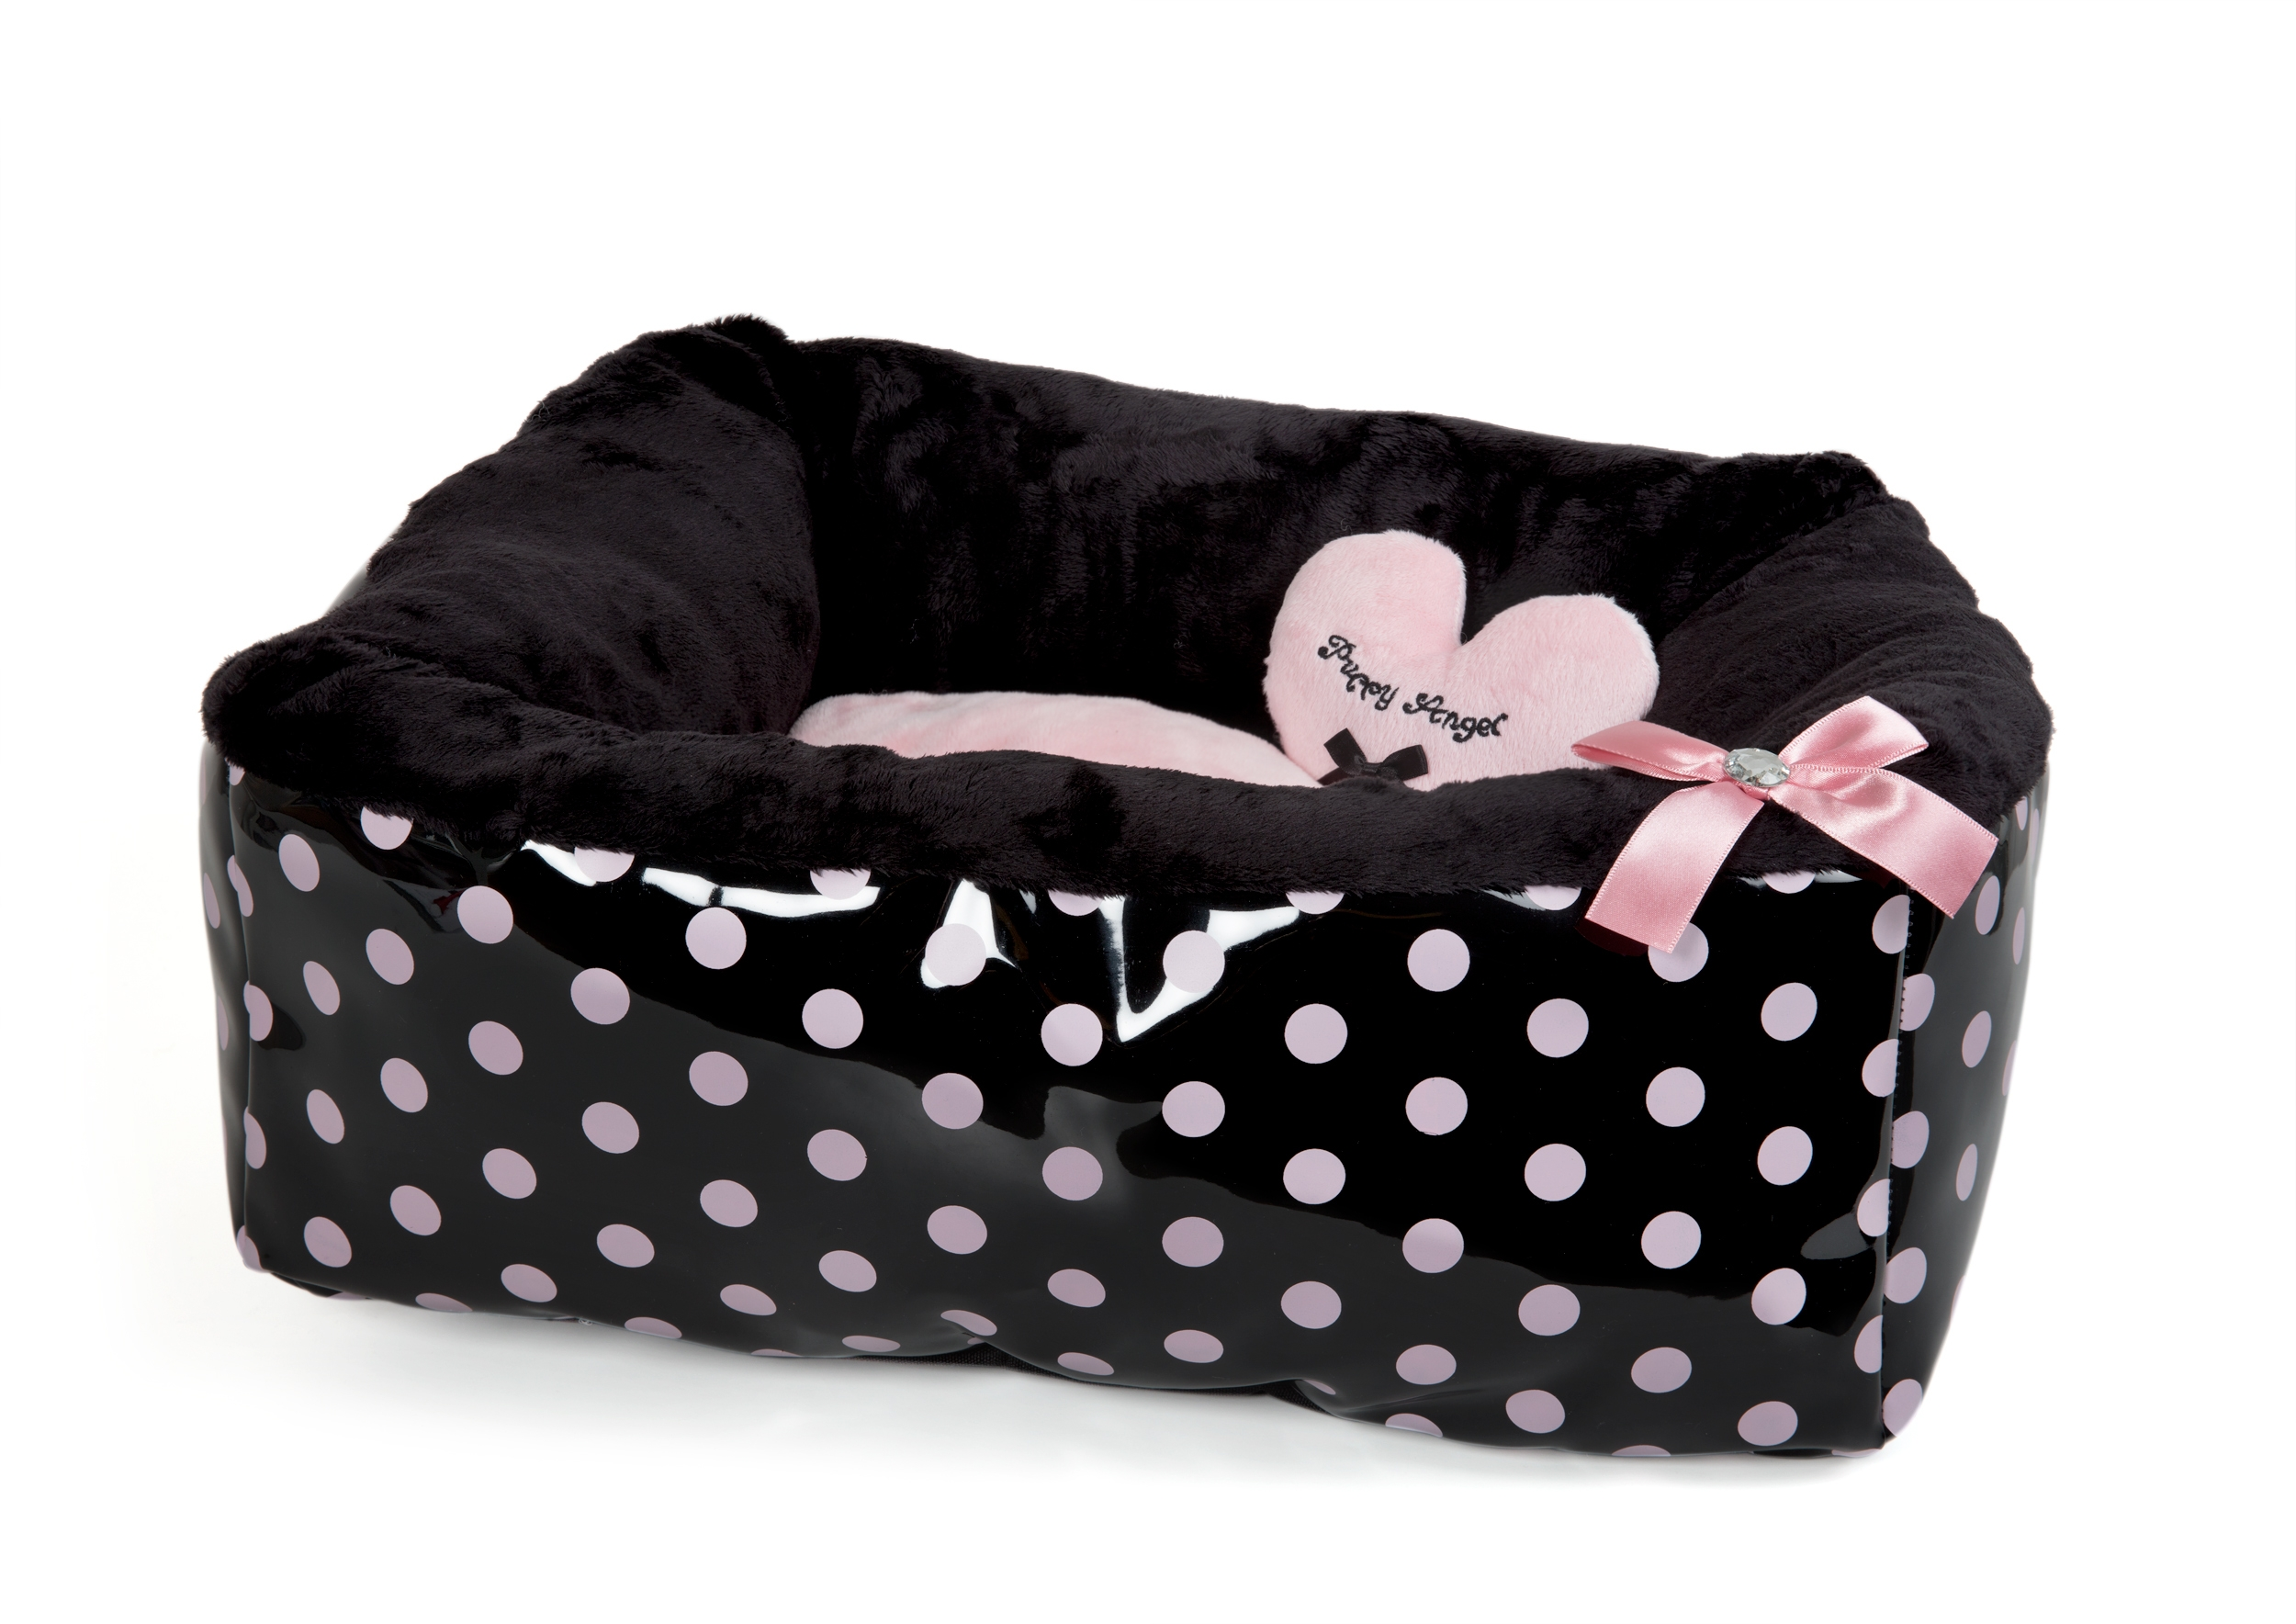 Polkadot Ease Bed - Pink